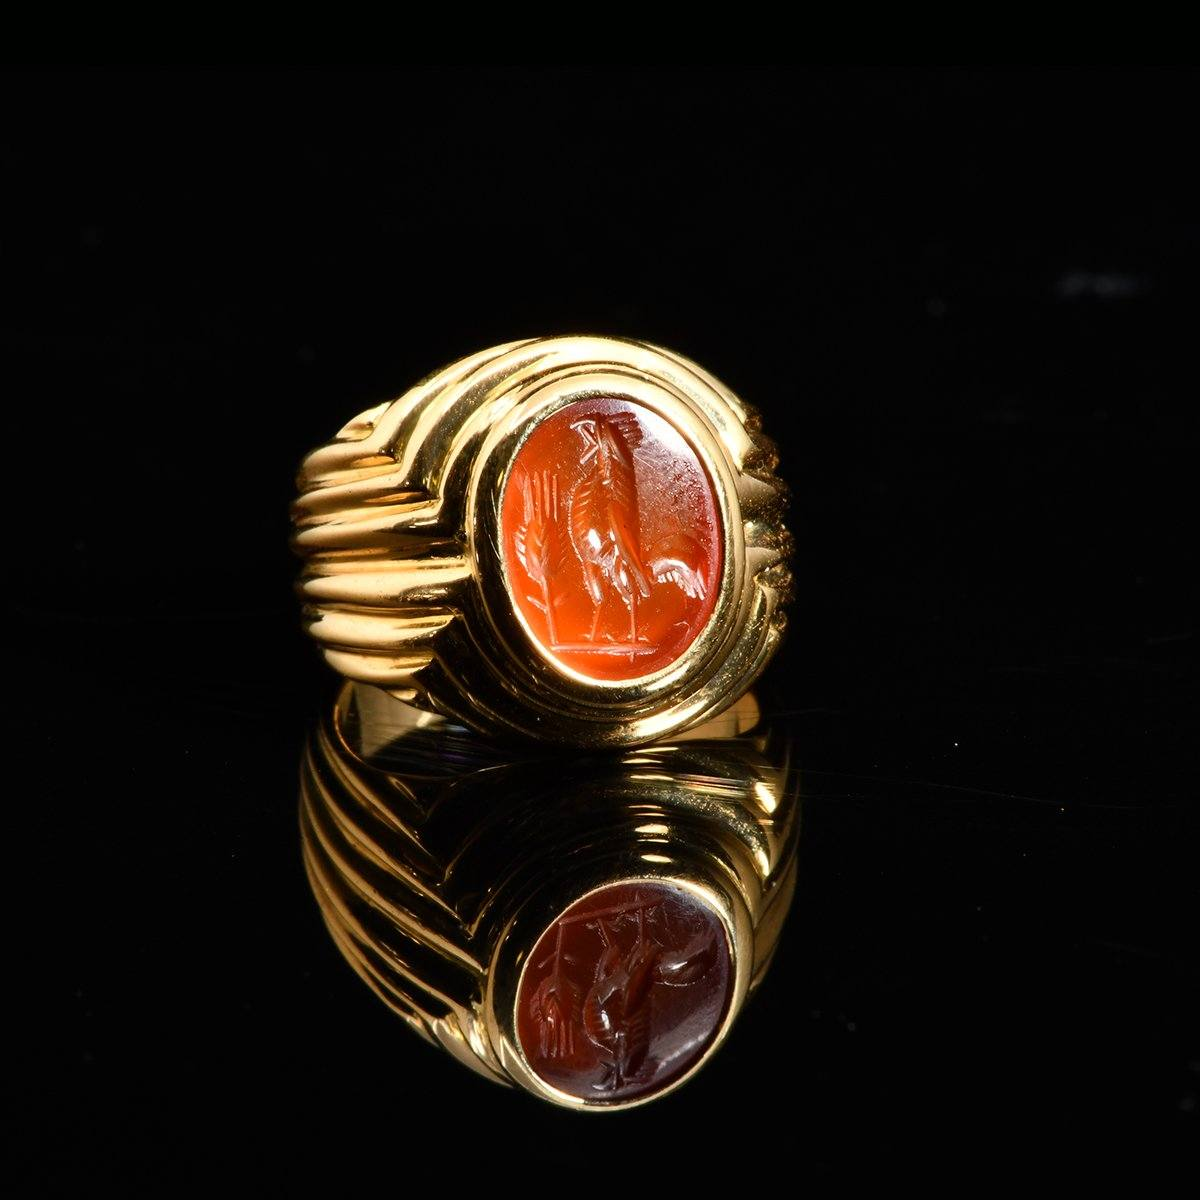 * A fine Bvlgari 18K gold ring with Roman Intaglio, ca 2nd century CE